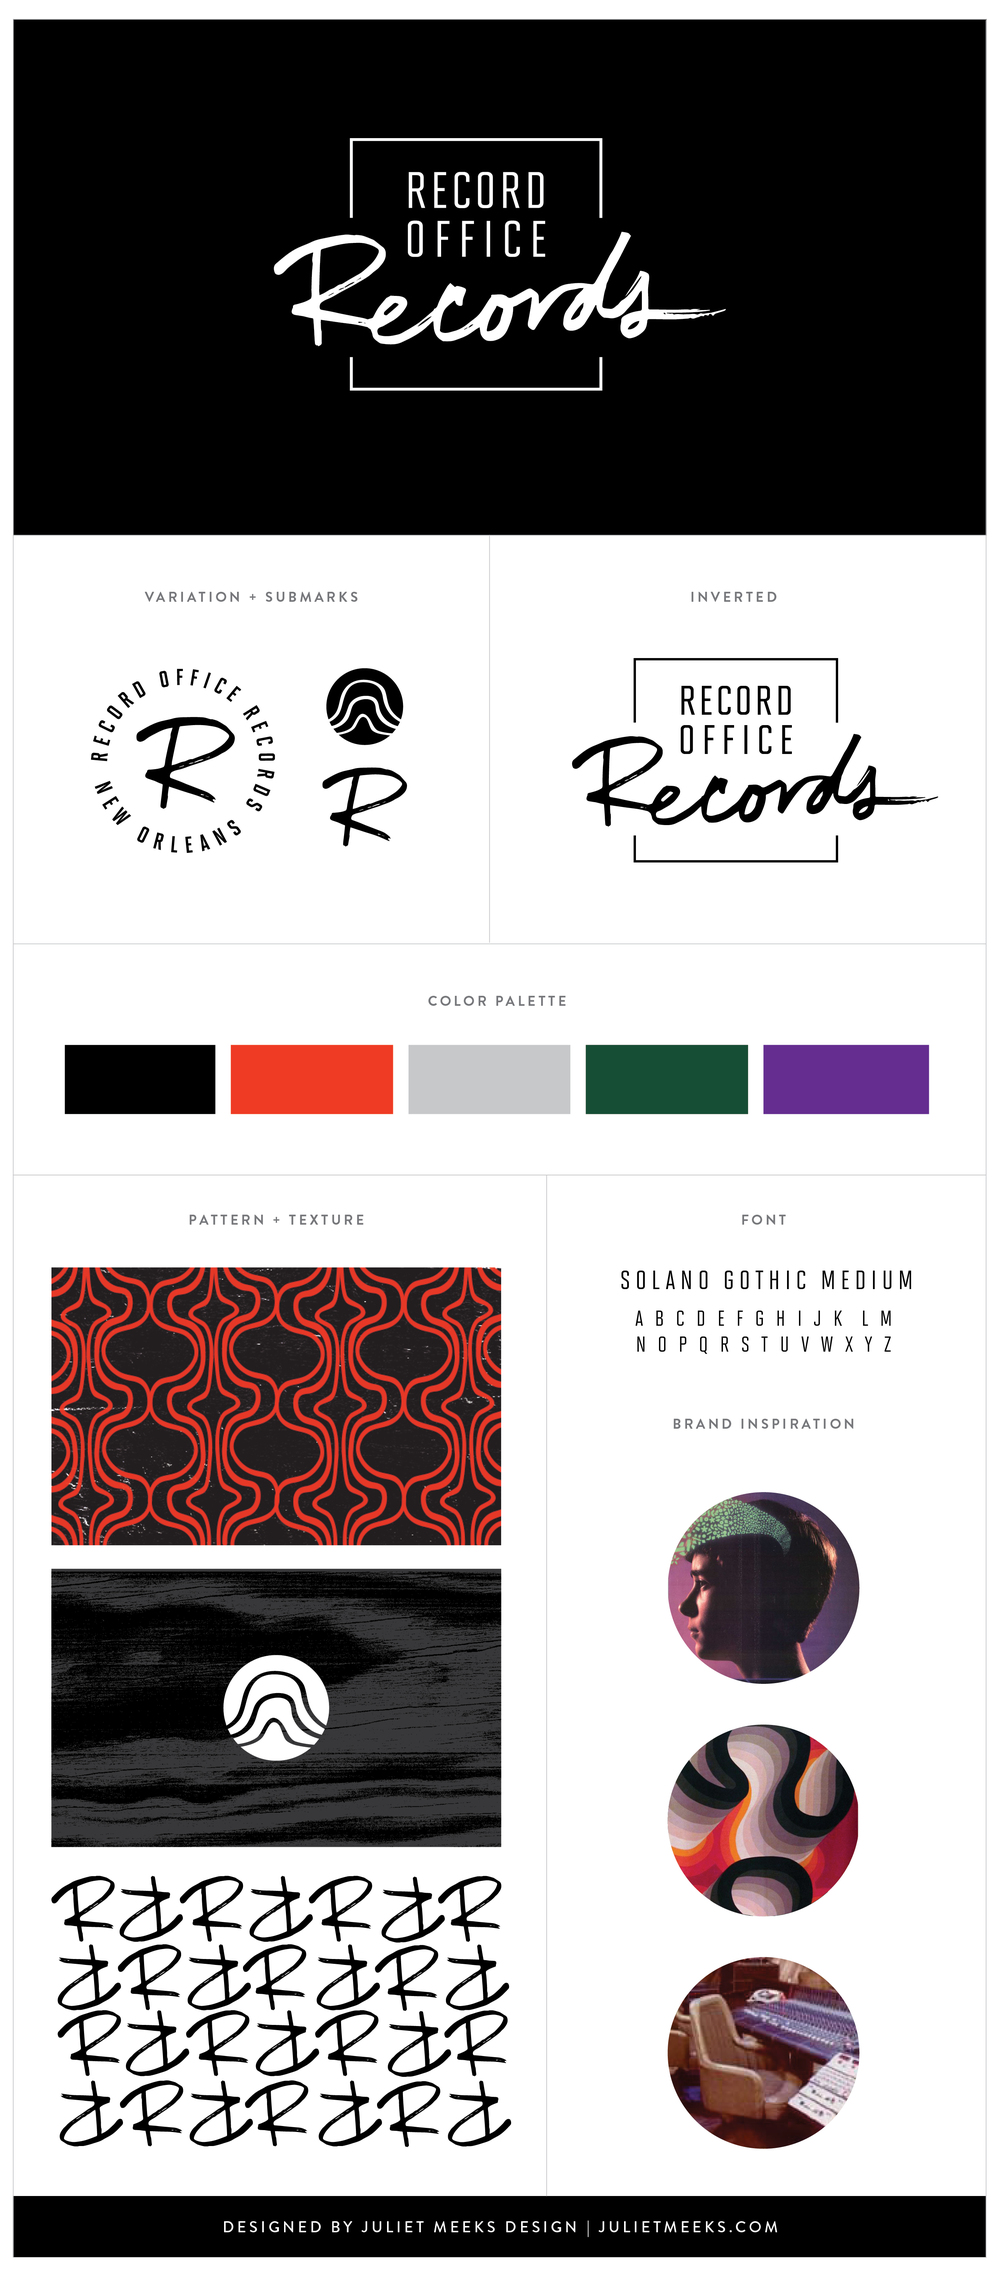 Record Office Records Style Guide